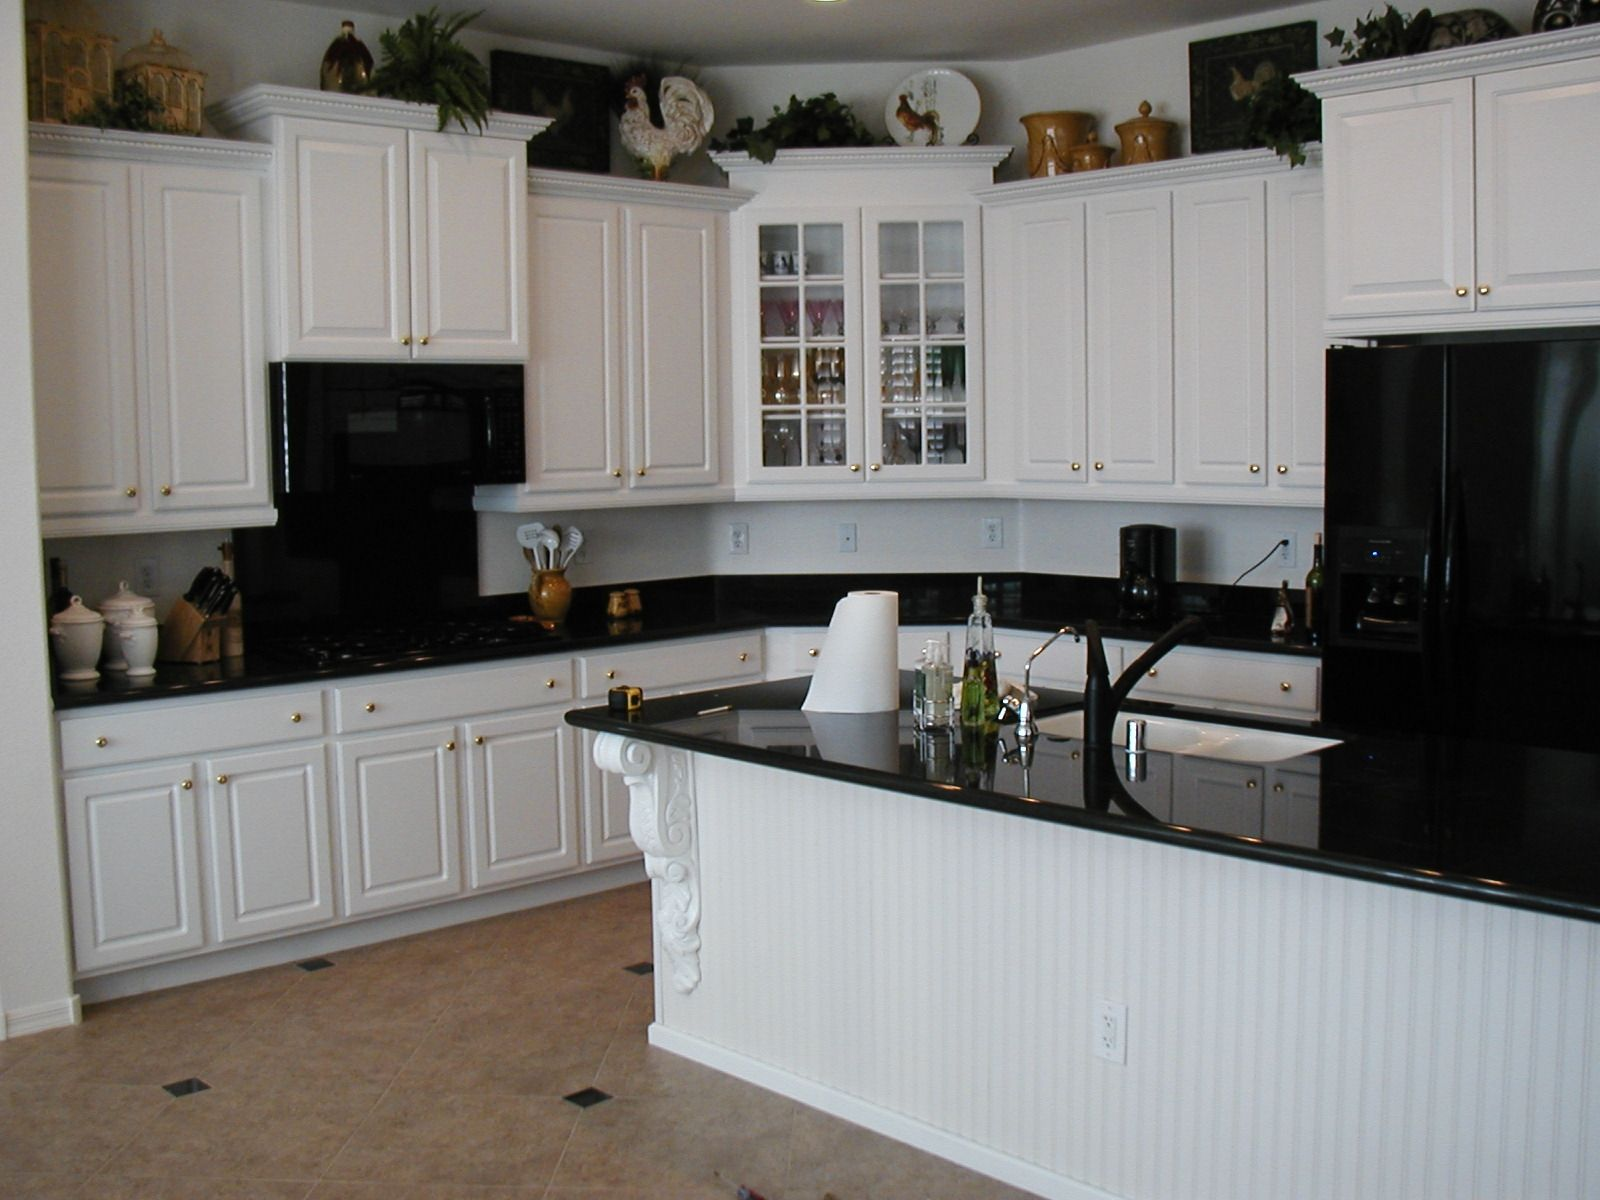 creamy white kitchen with black appliances Are